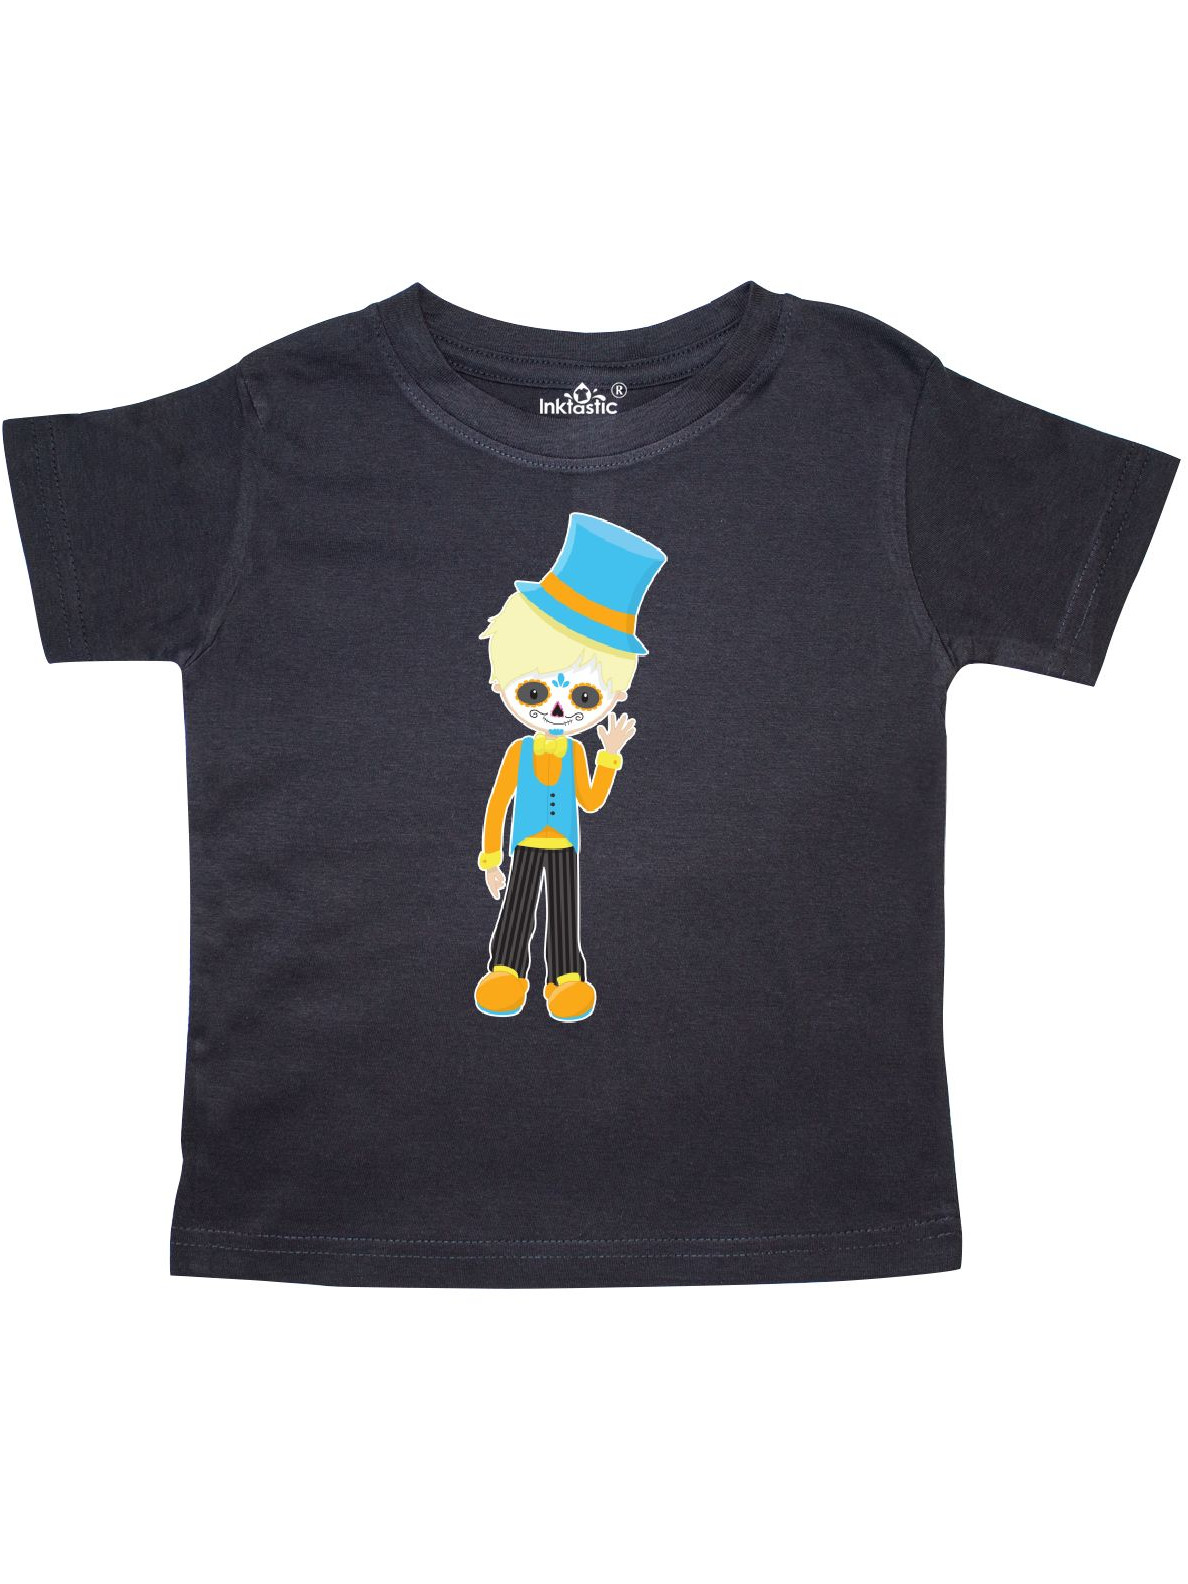 Dia de los Muertos blond boy Toddler T-Shirt